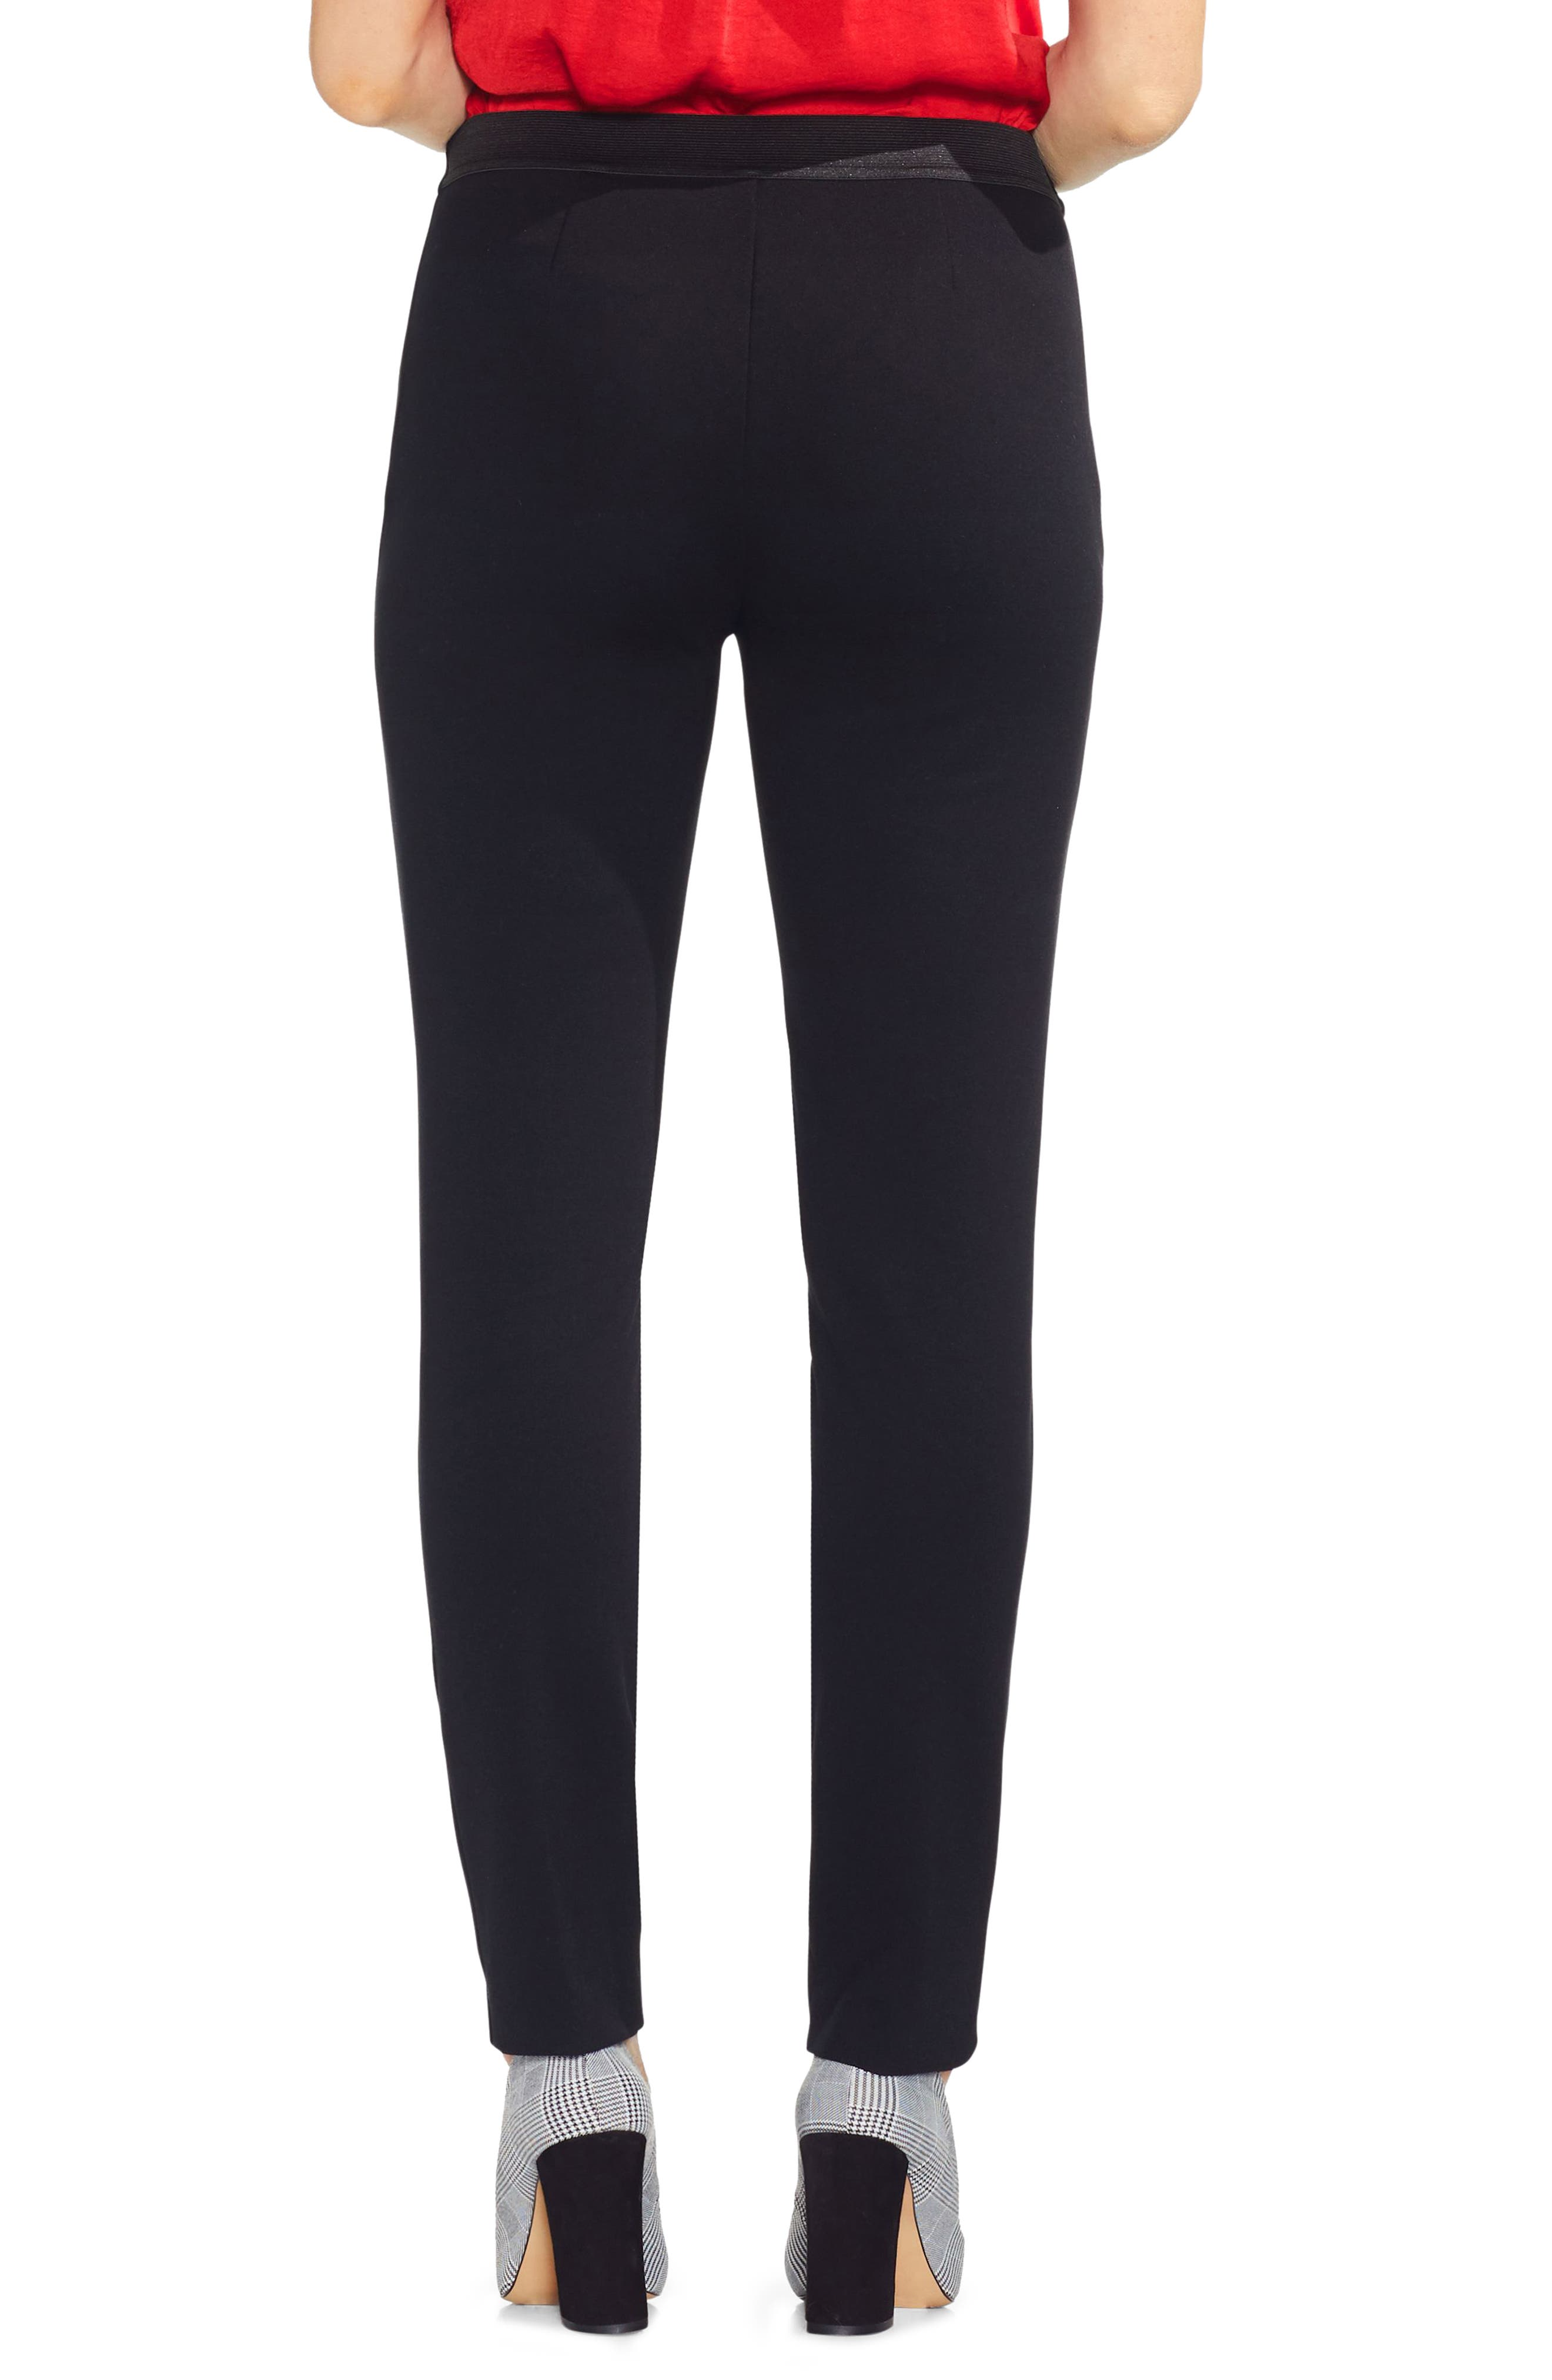 VINCE CAMUTO, Ponte Skinny Ankle Pants, Alternate thumbnail 2, color, 001